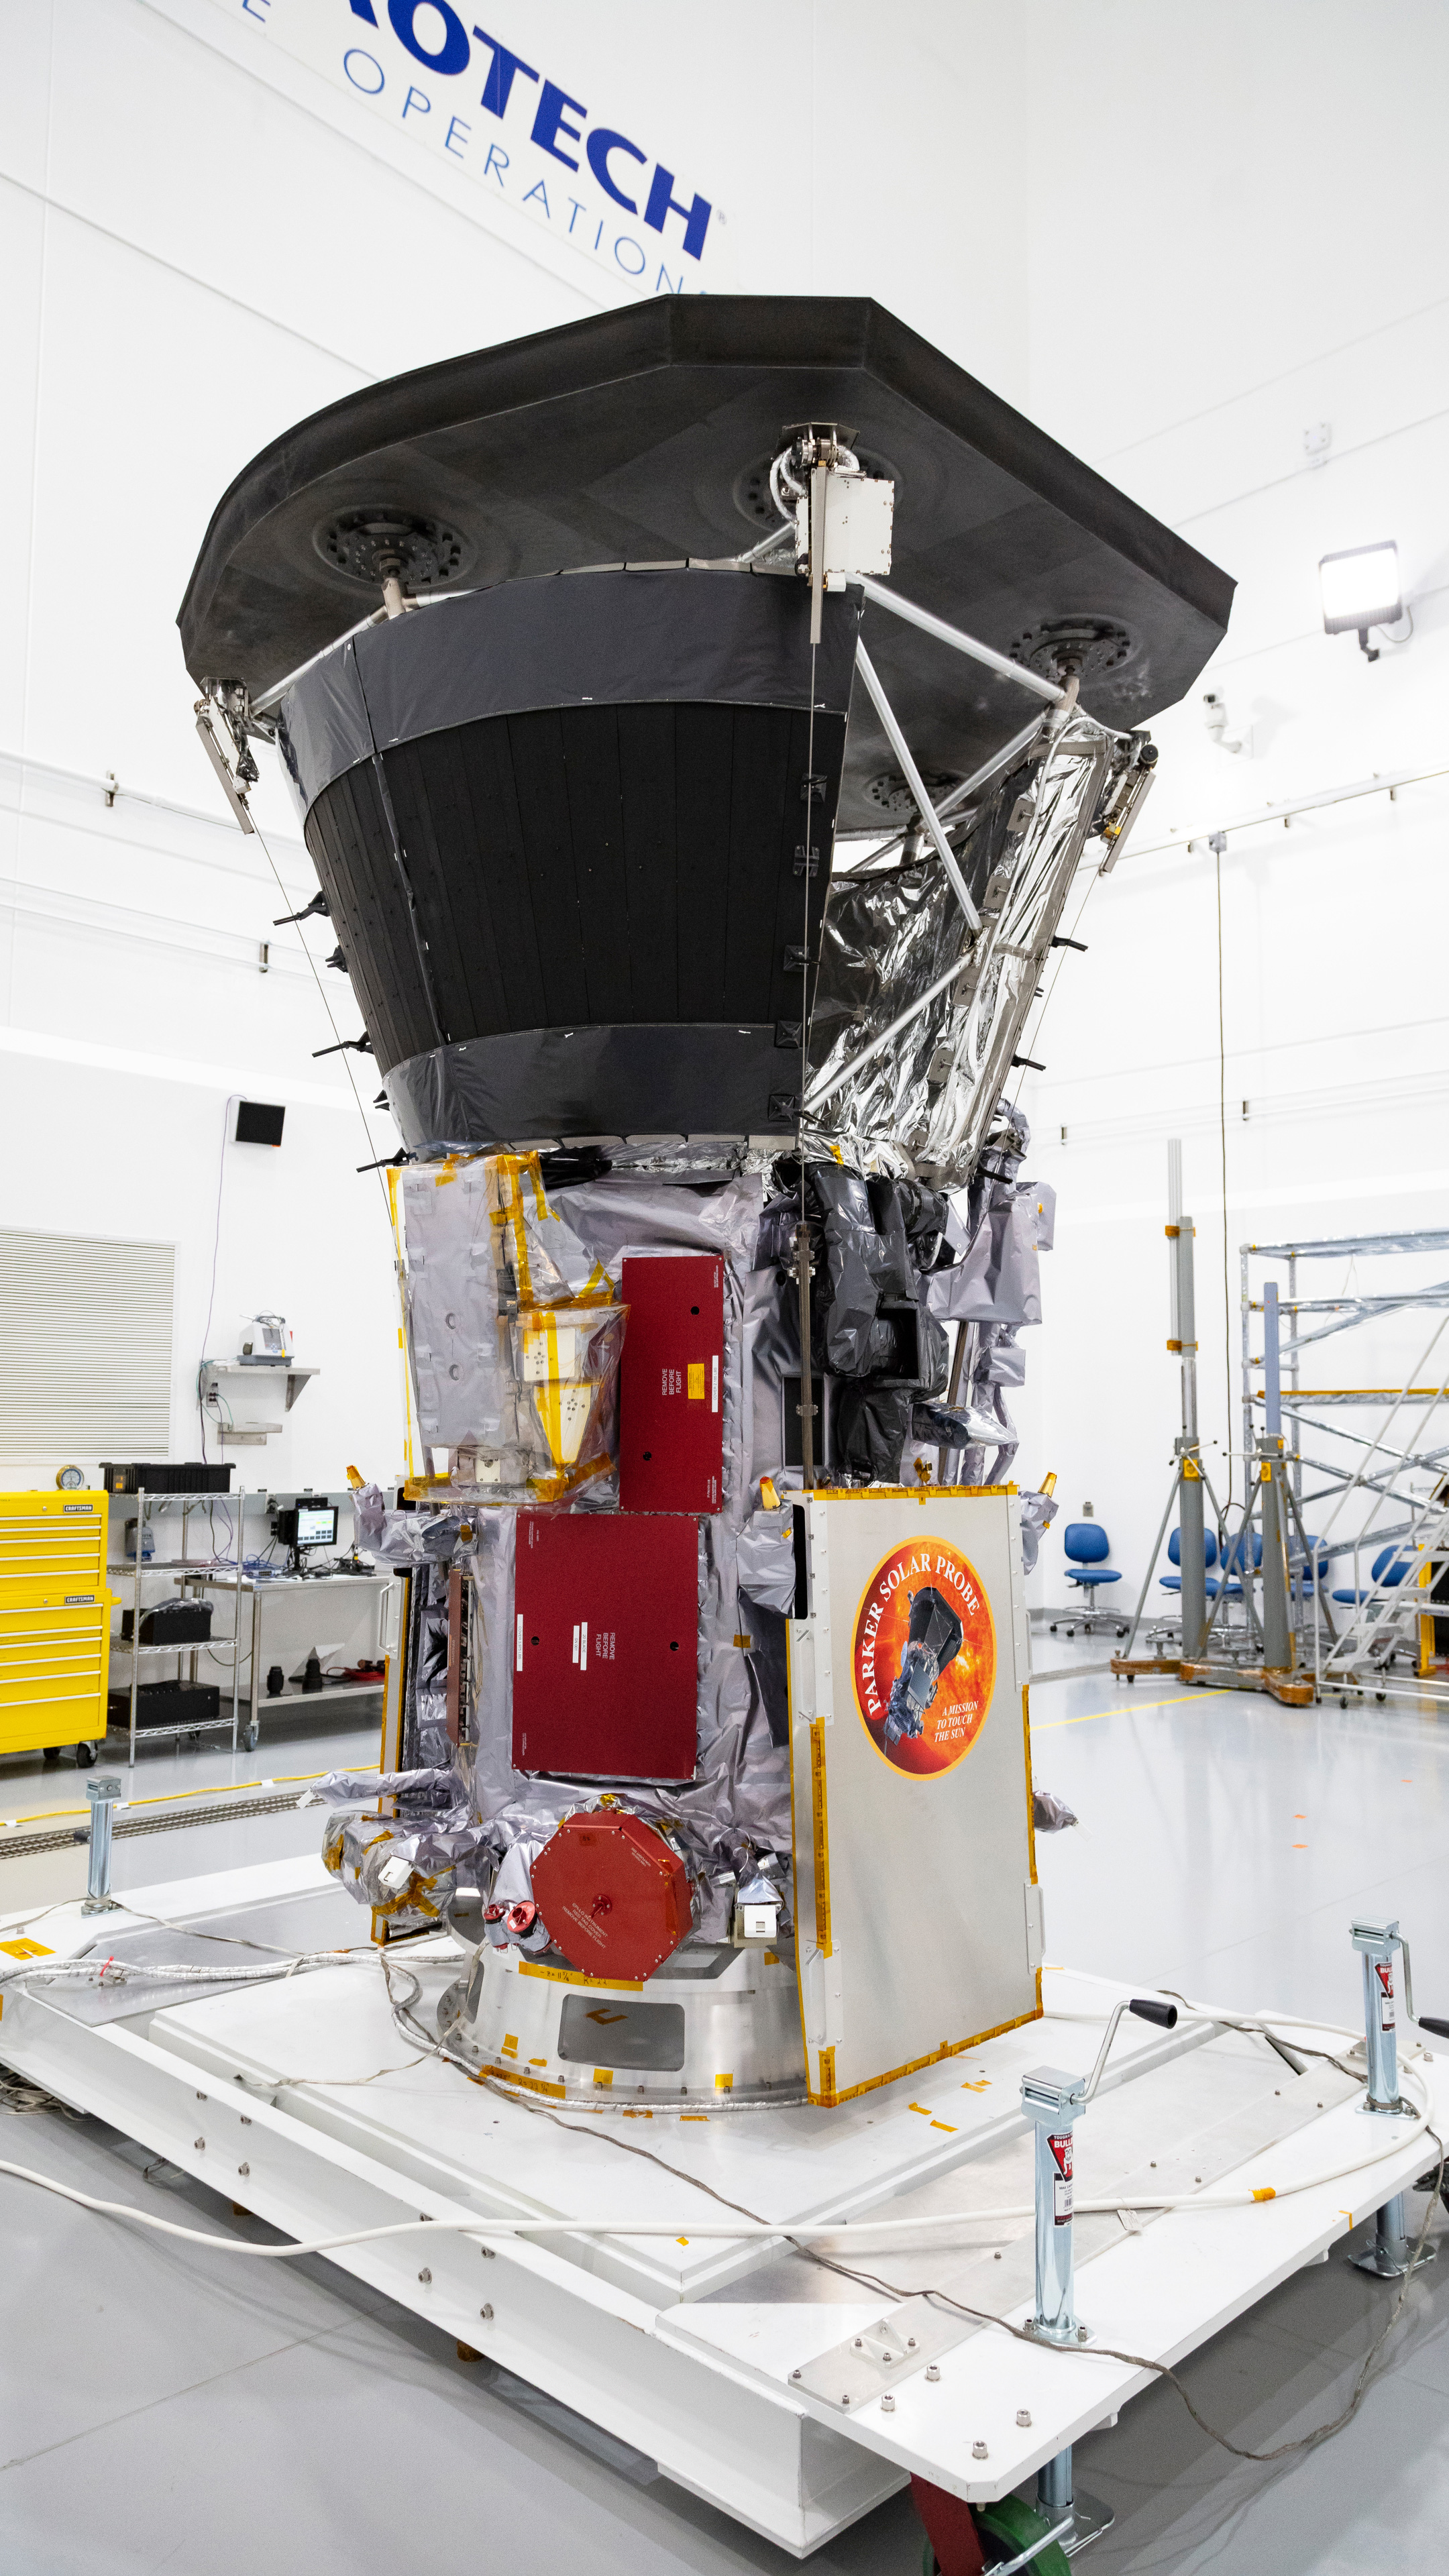 Parker Solar Probe sits in a clean room